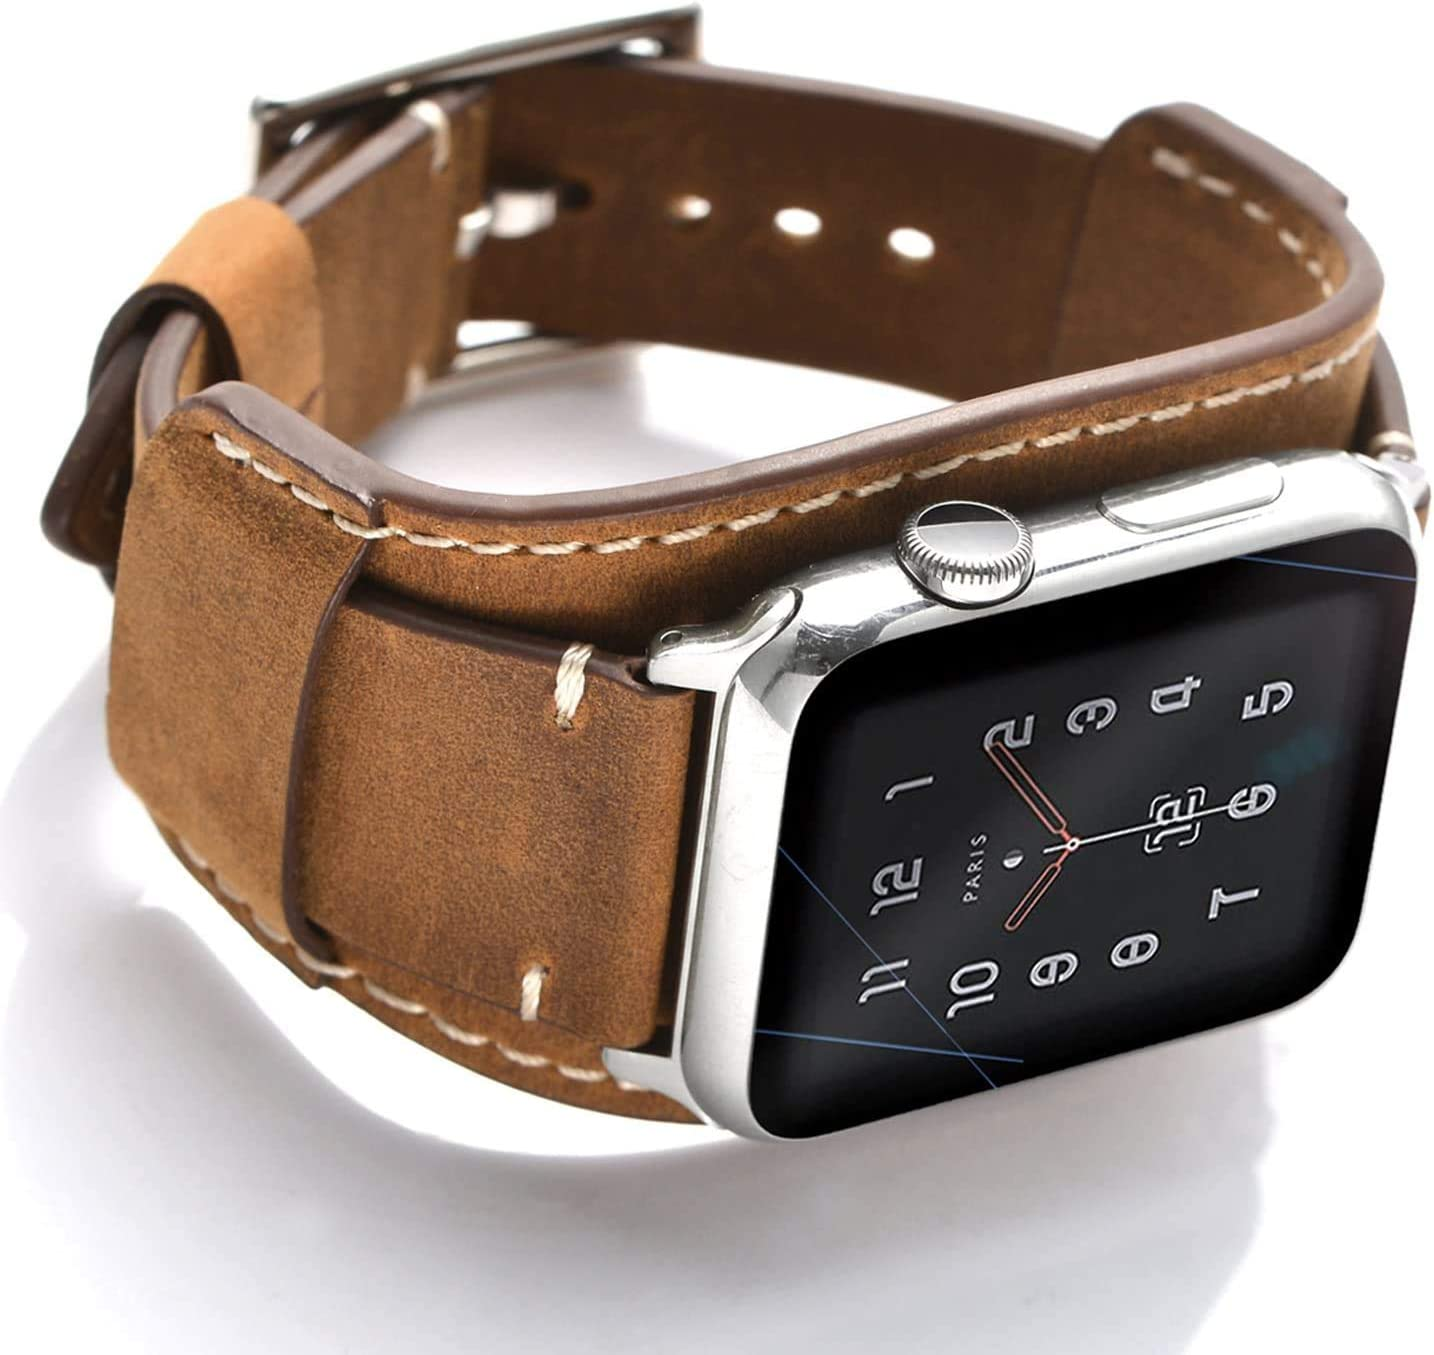 Jamcl Compatible with Apple Watch Band 44 mm 42 mm, Genuine Leather Vintage Strap for iwatch Series 5/4/3/2/1 Men Women Cuff Sport Bracelet with Stainless Steel Metal Buckle (Brown, 44/42mm)